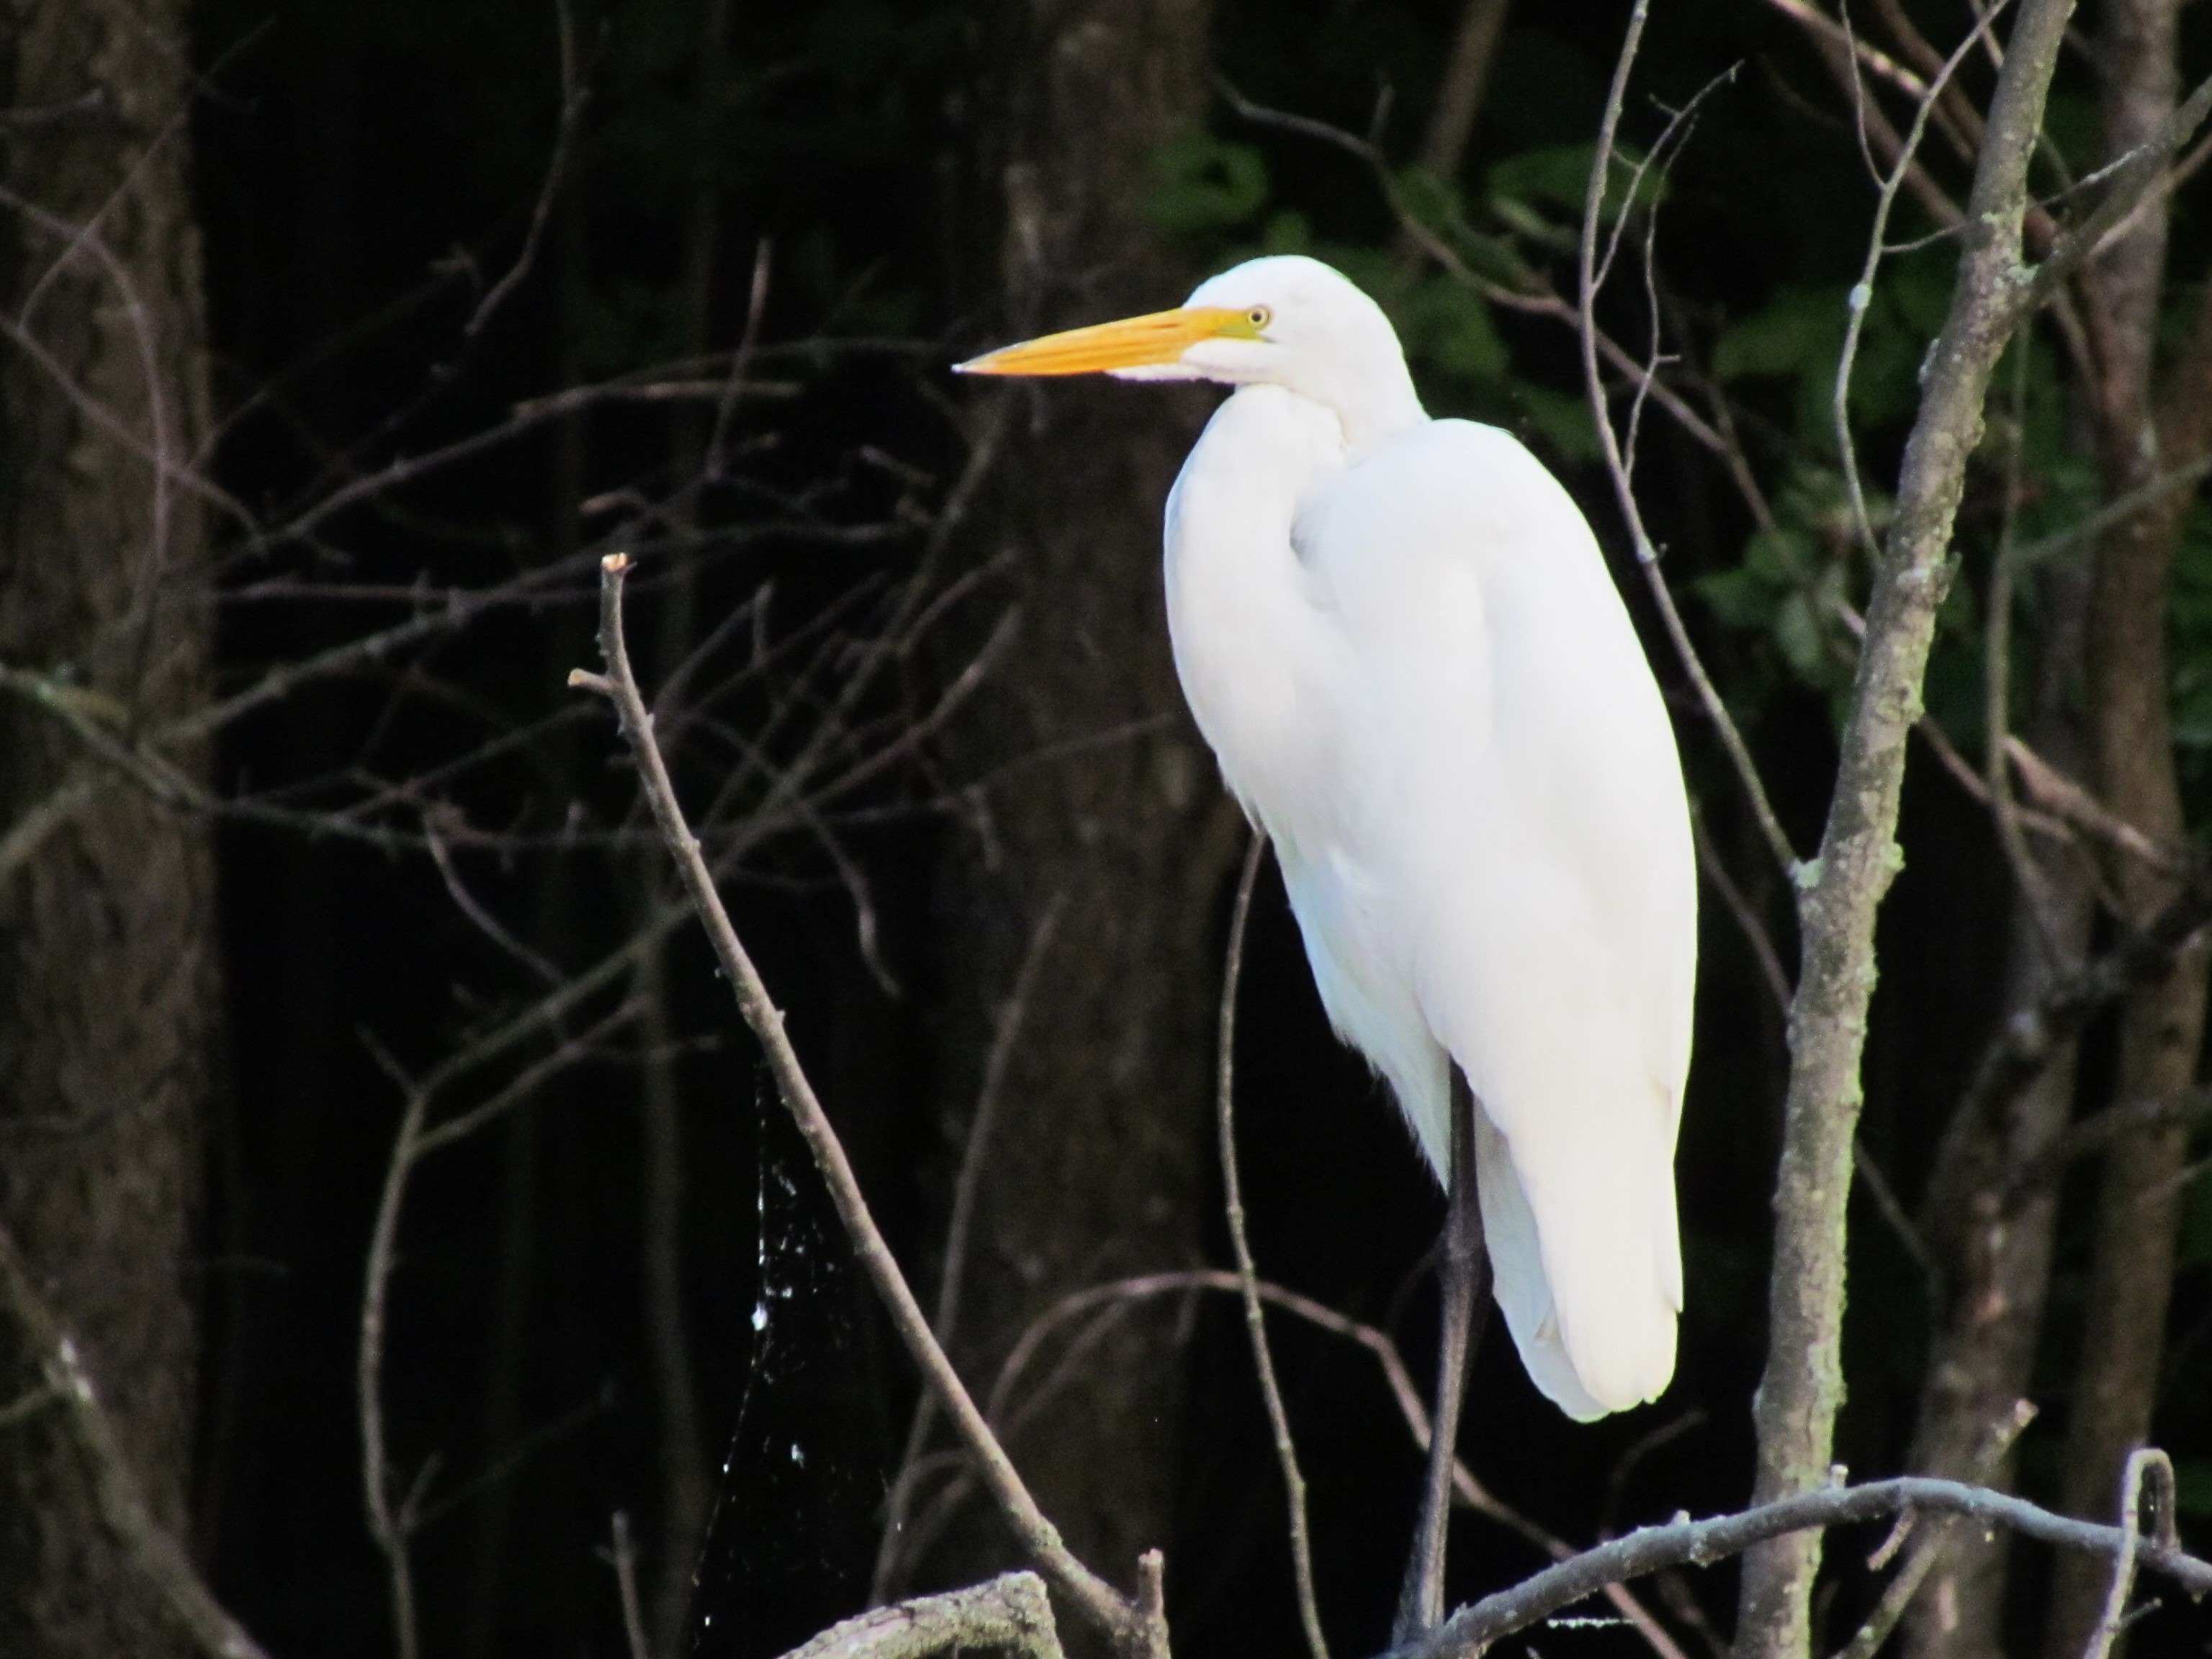 A great egret perched on a branch